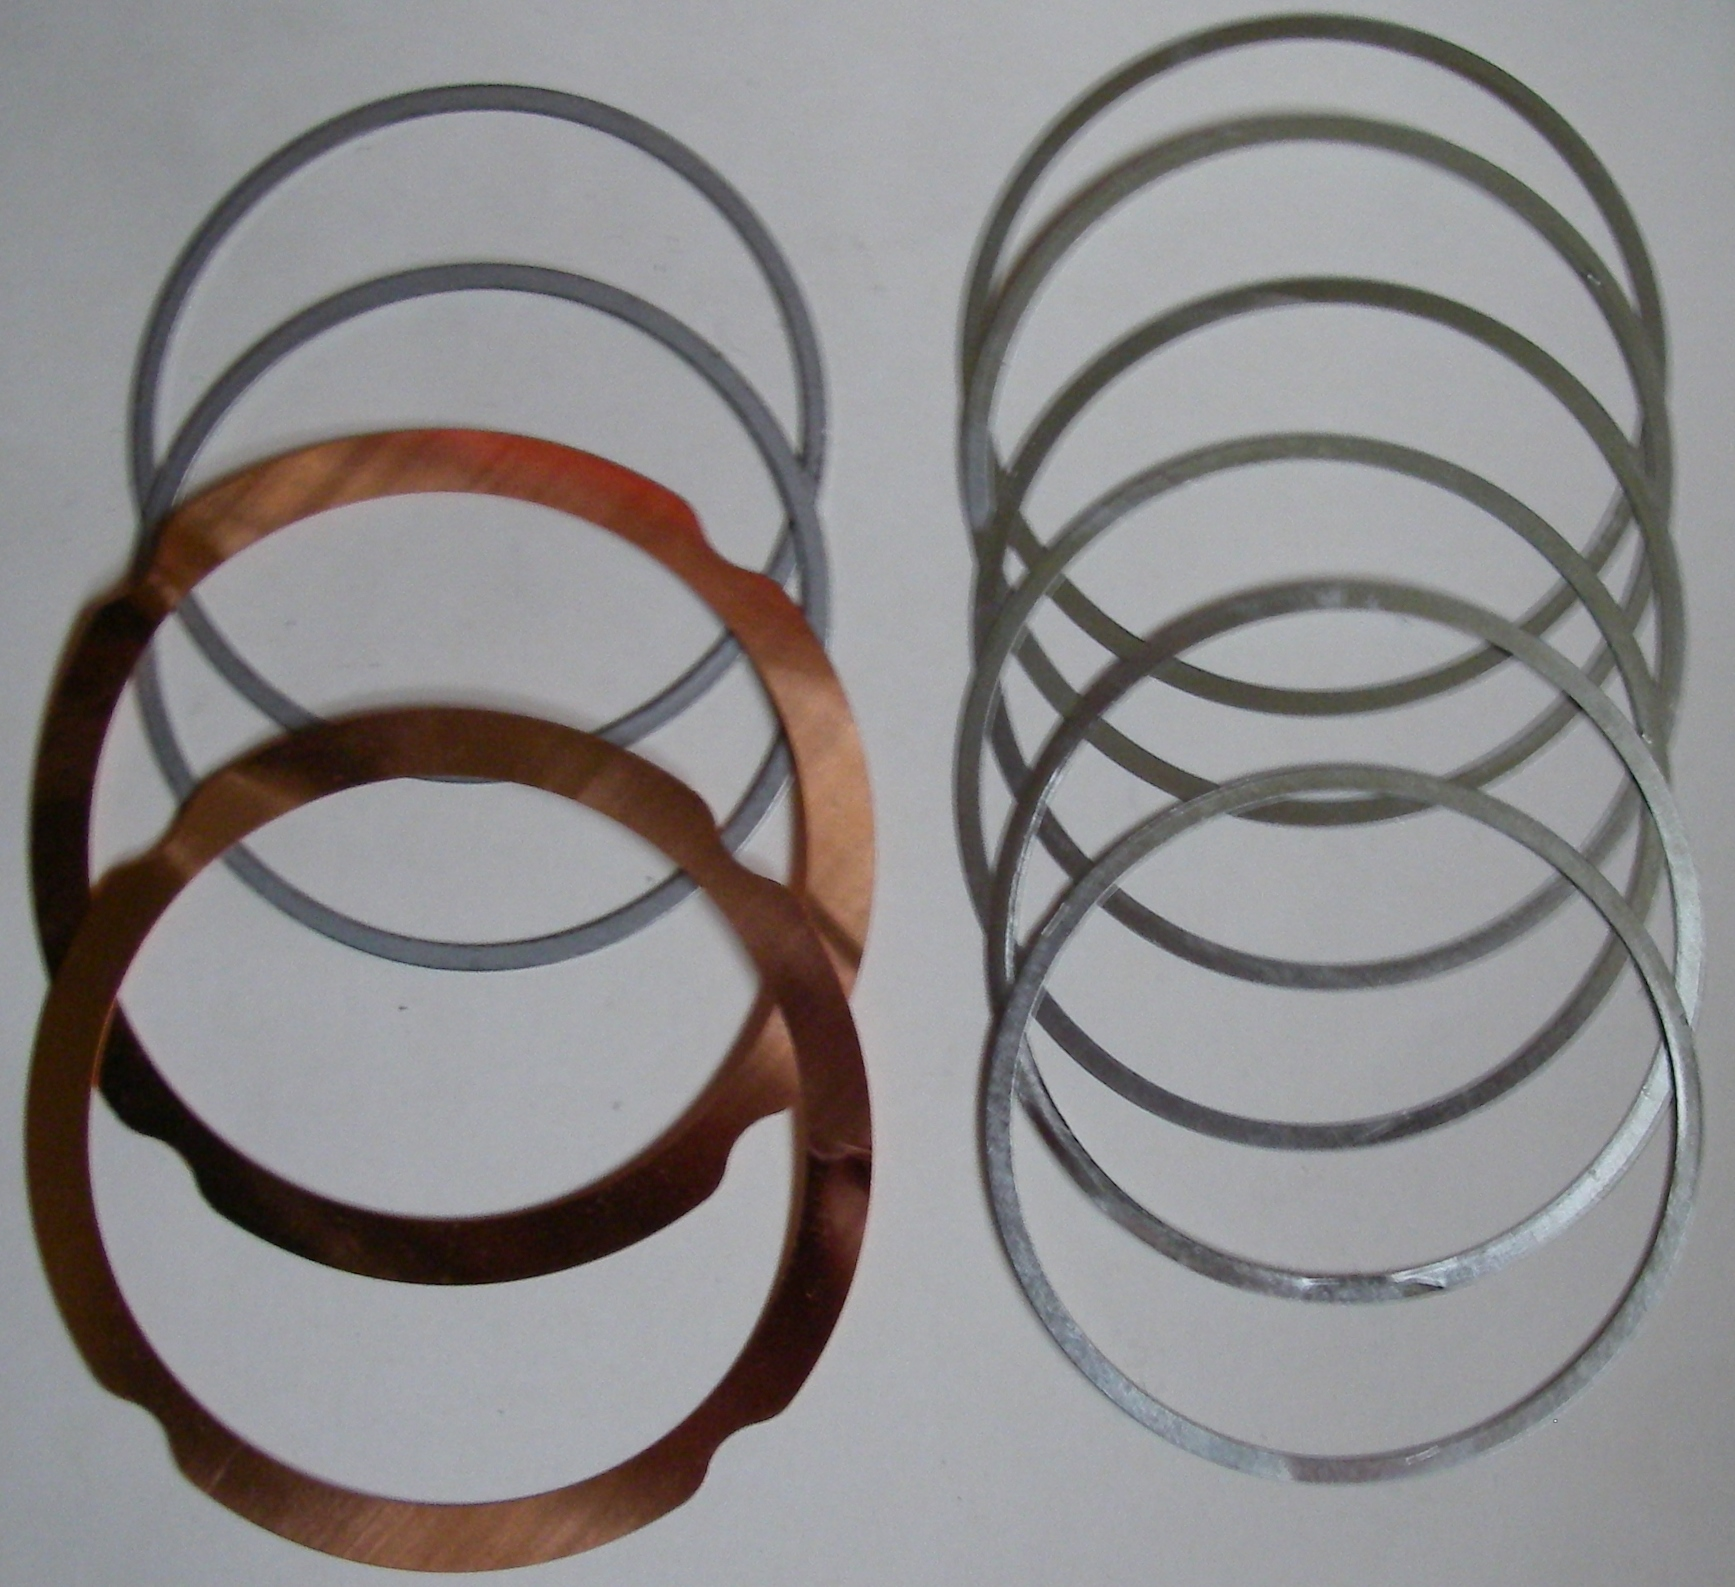 <b>Lister SR2 Engine Shim Set. </b>